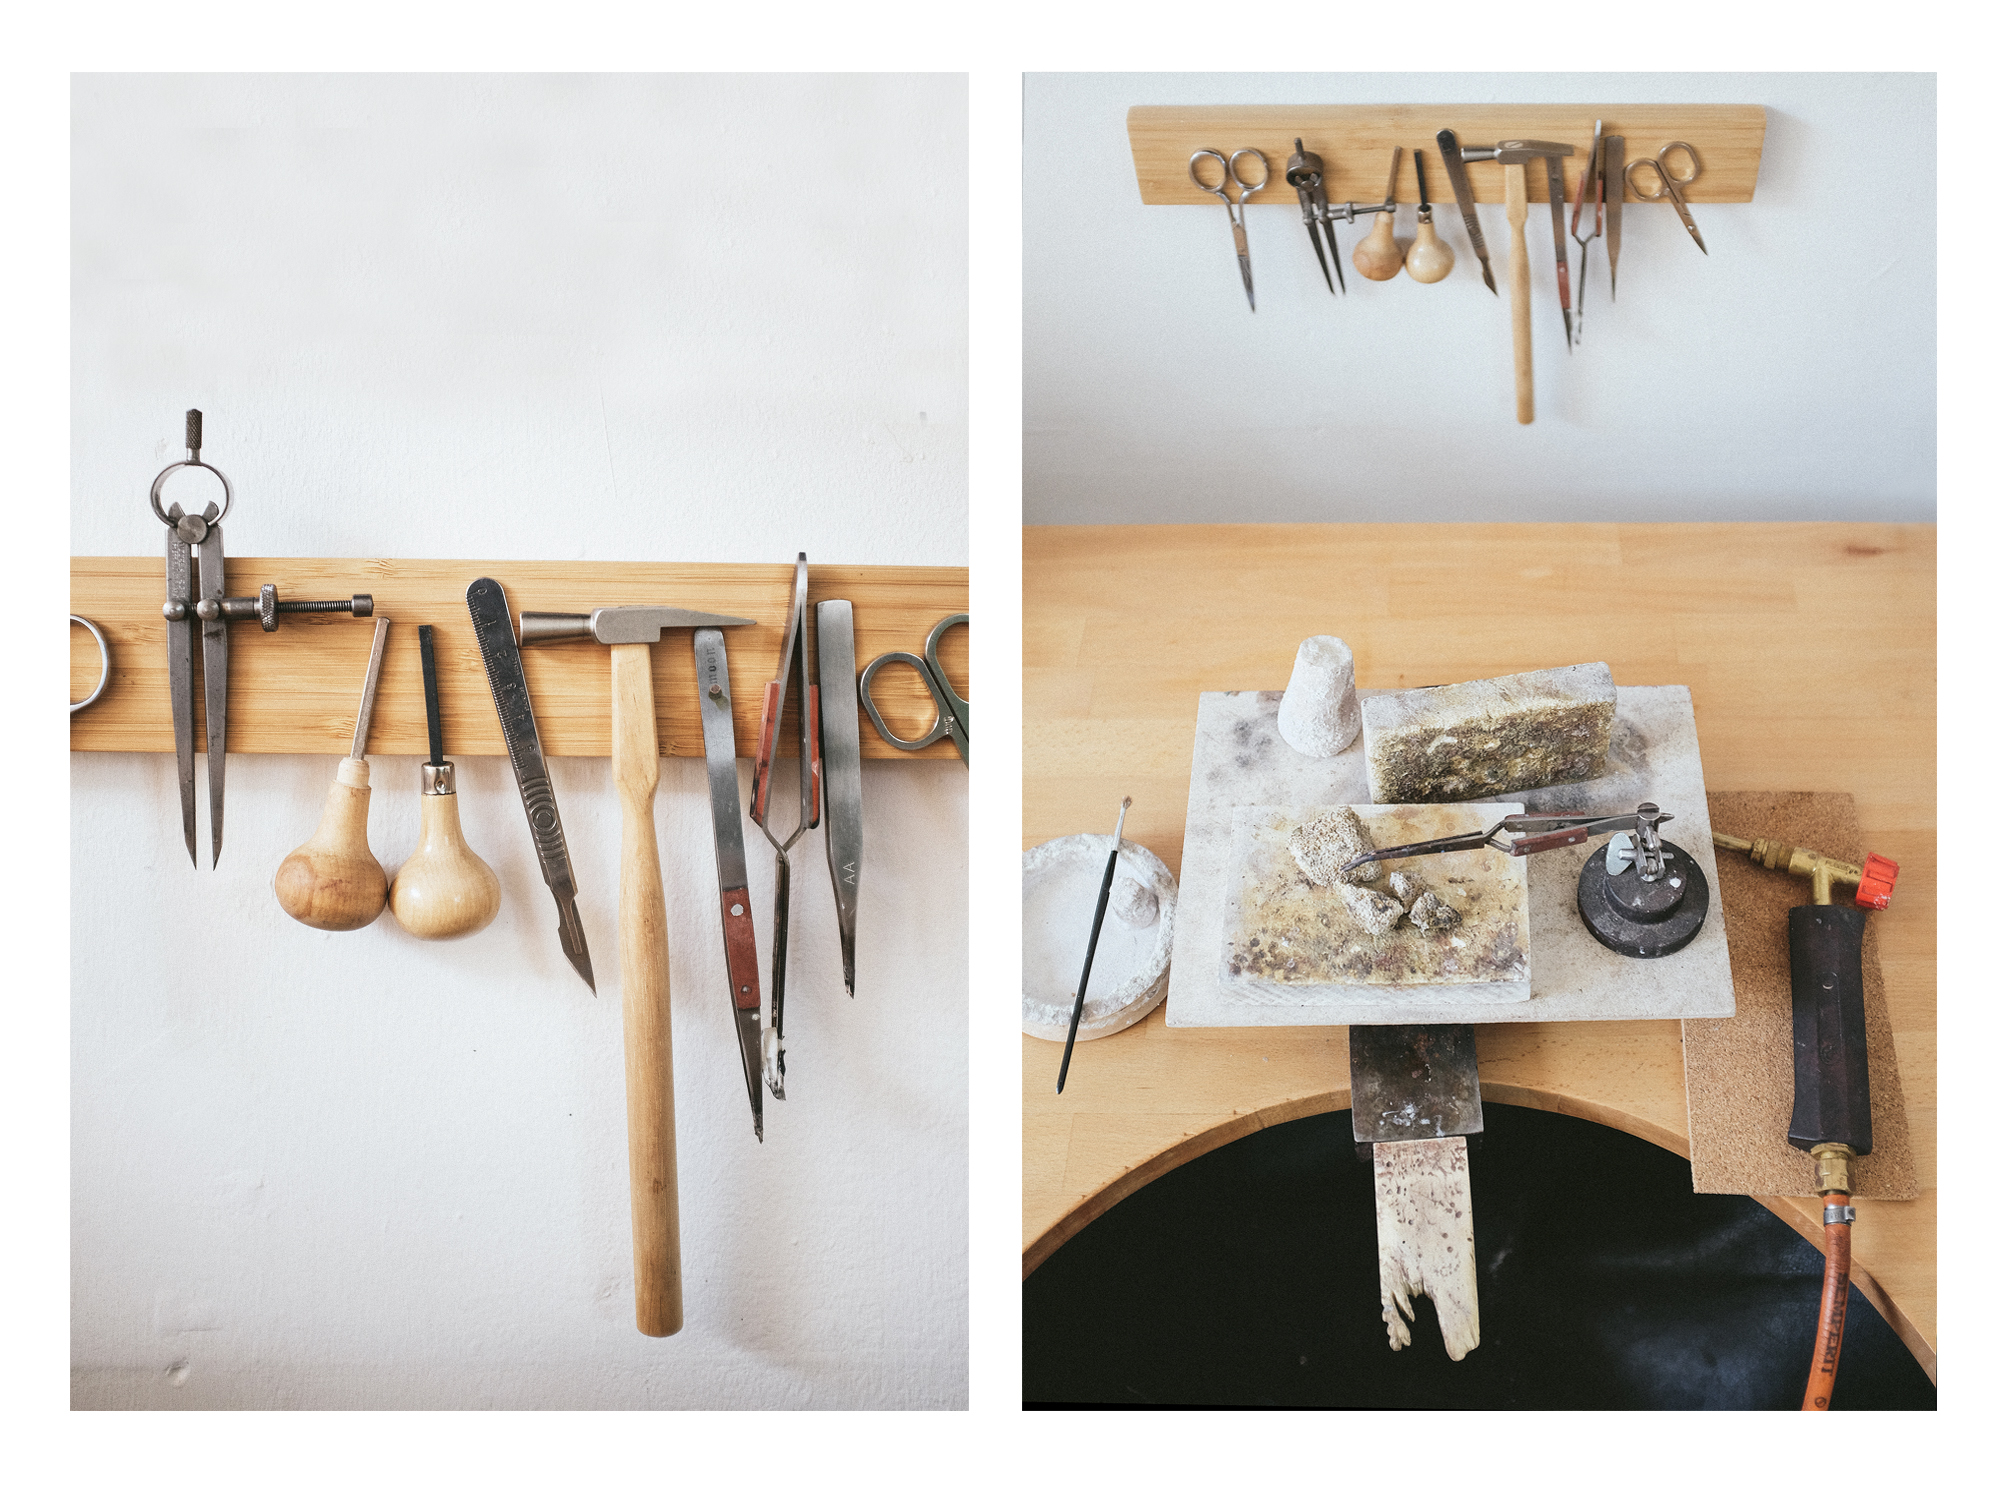 How to make your own jewellers workshop bench?